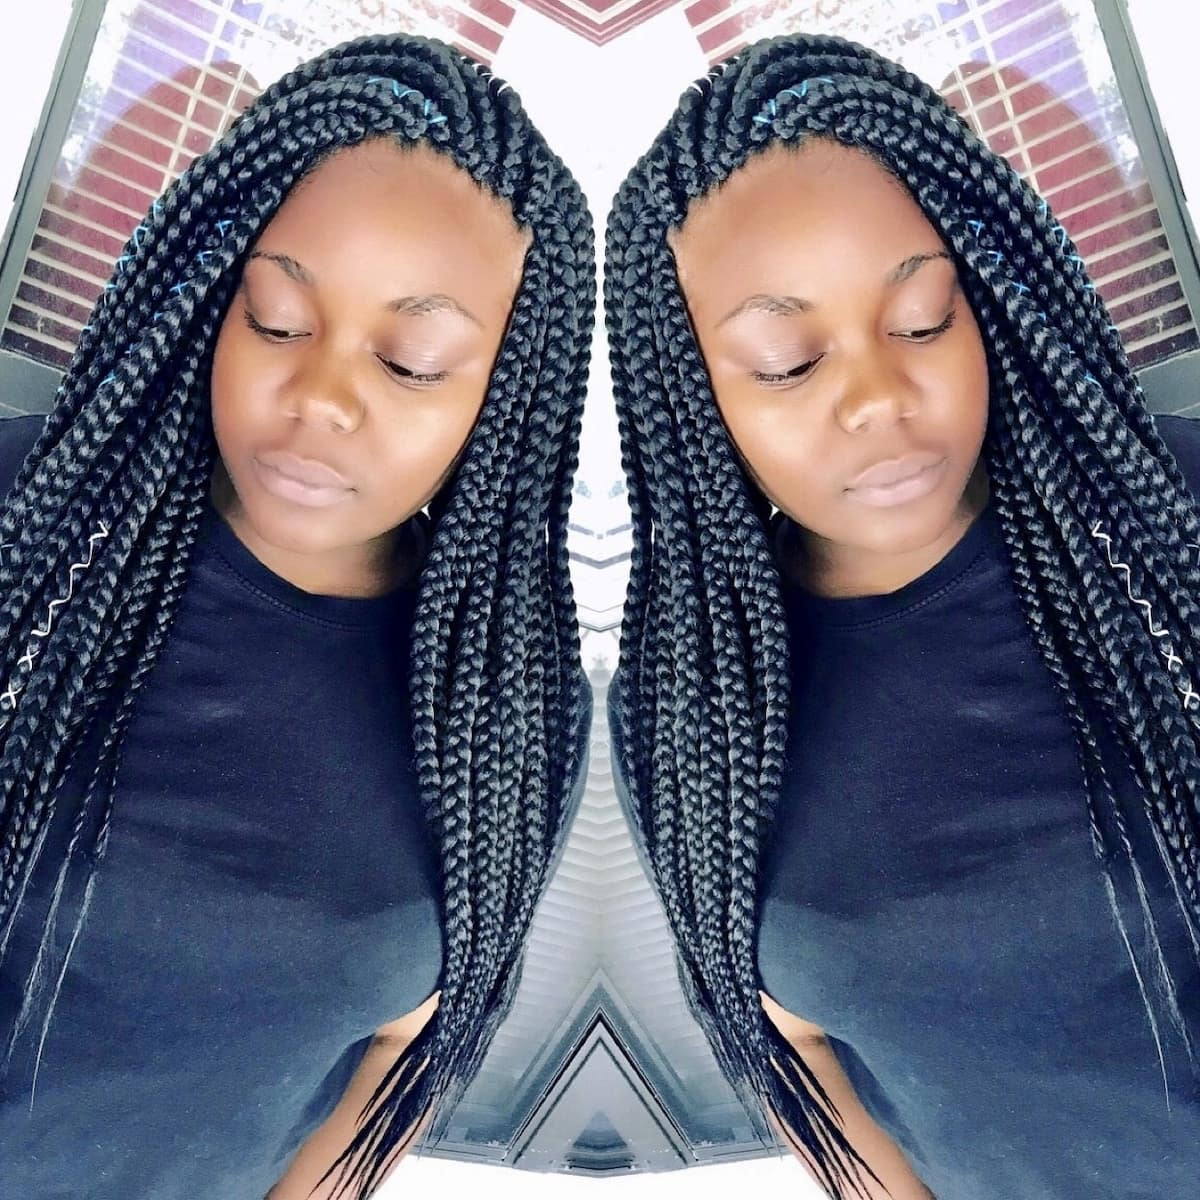 how to style braids styling braids how to style long braids hairstyles for braids